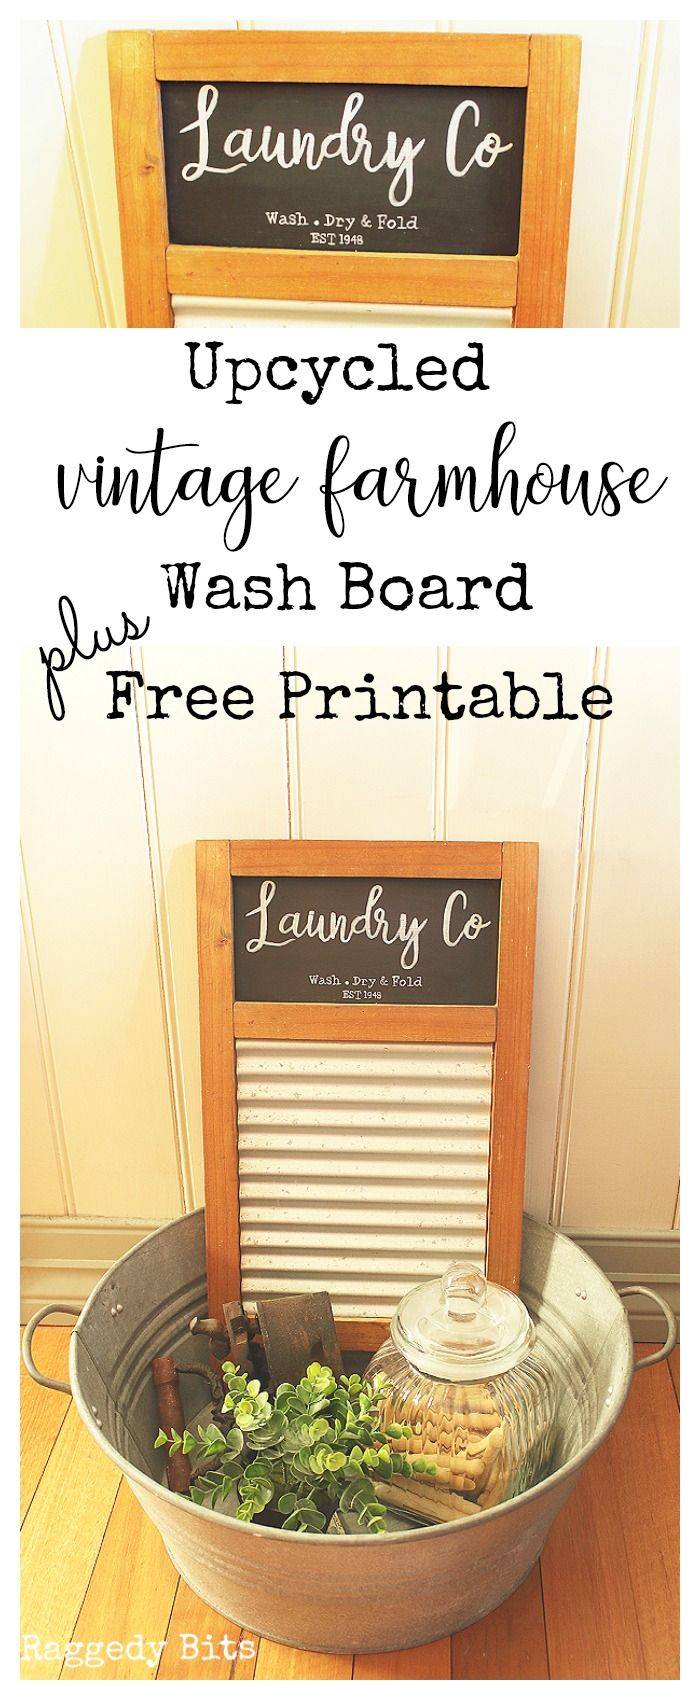 Our laundry is in the middle of a little makeover and I almost threw out this dated wash board. Sharing how our Upcycled Vintage Farmhouse Wash Board with a FREE printable   www.raggedy-bits.com